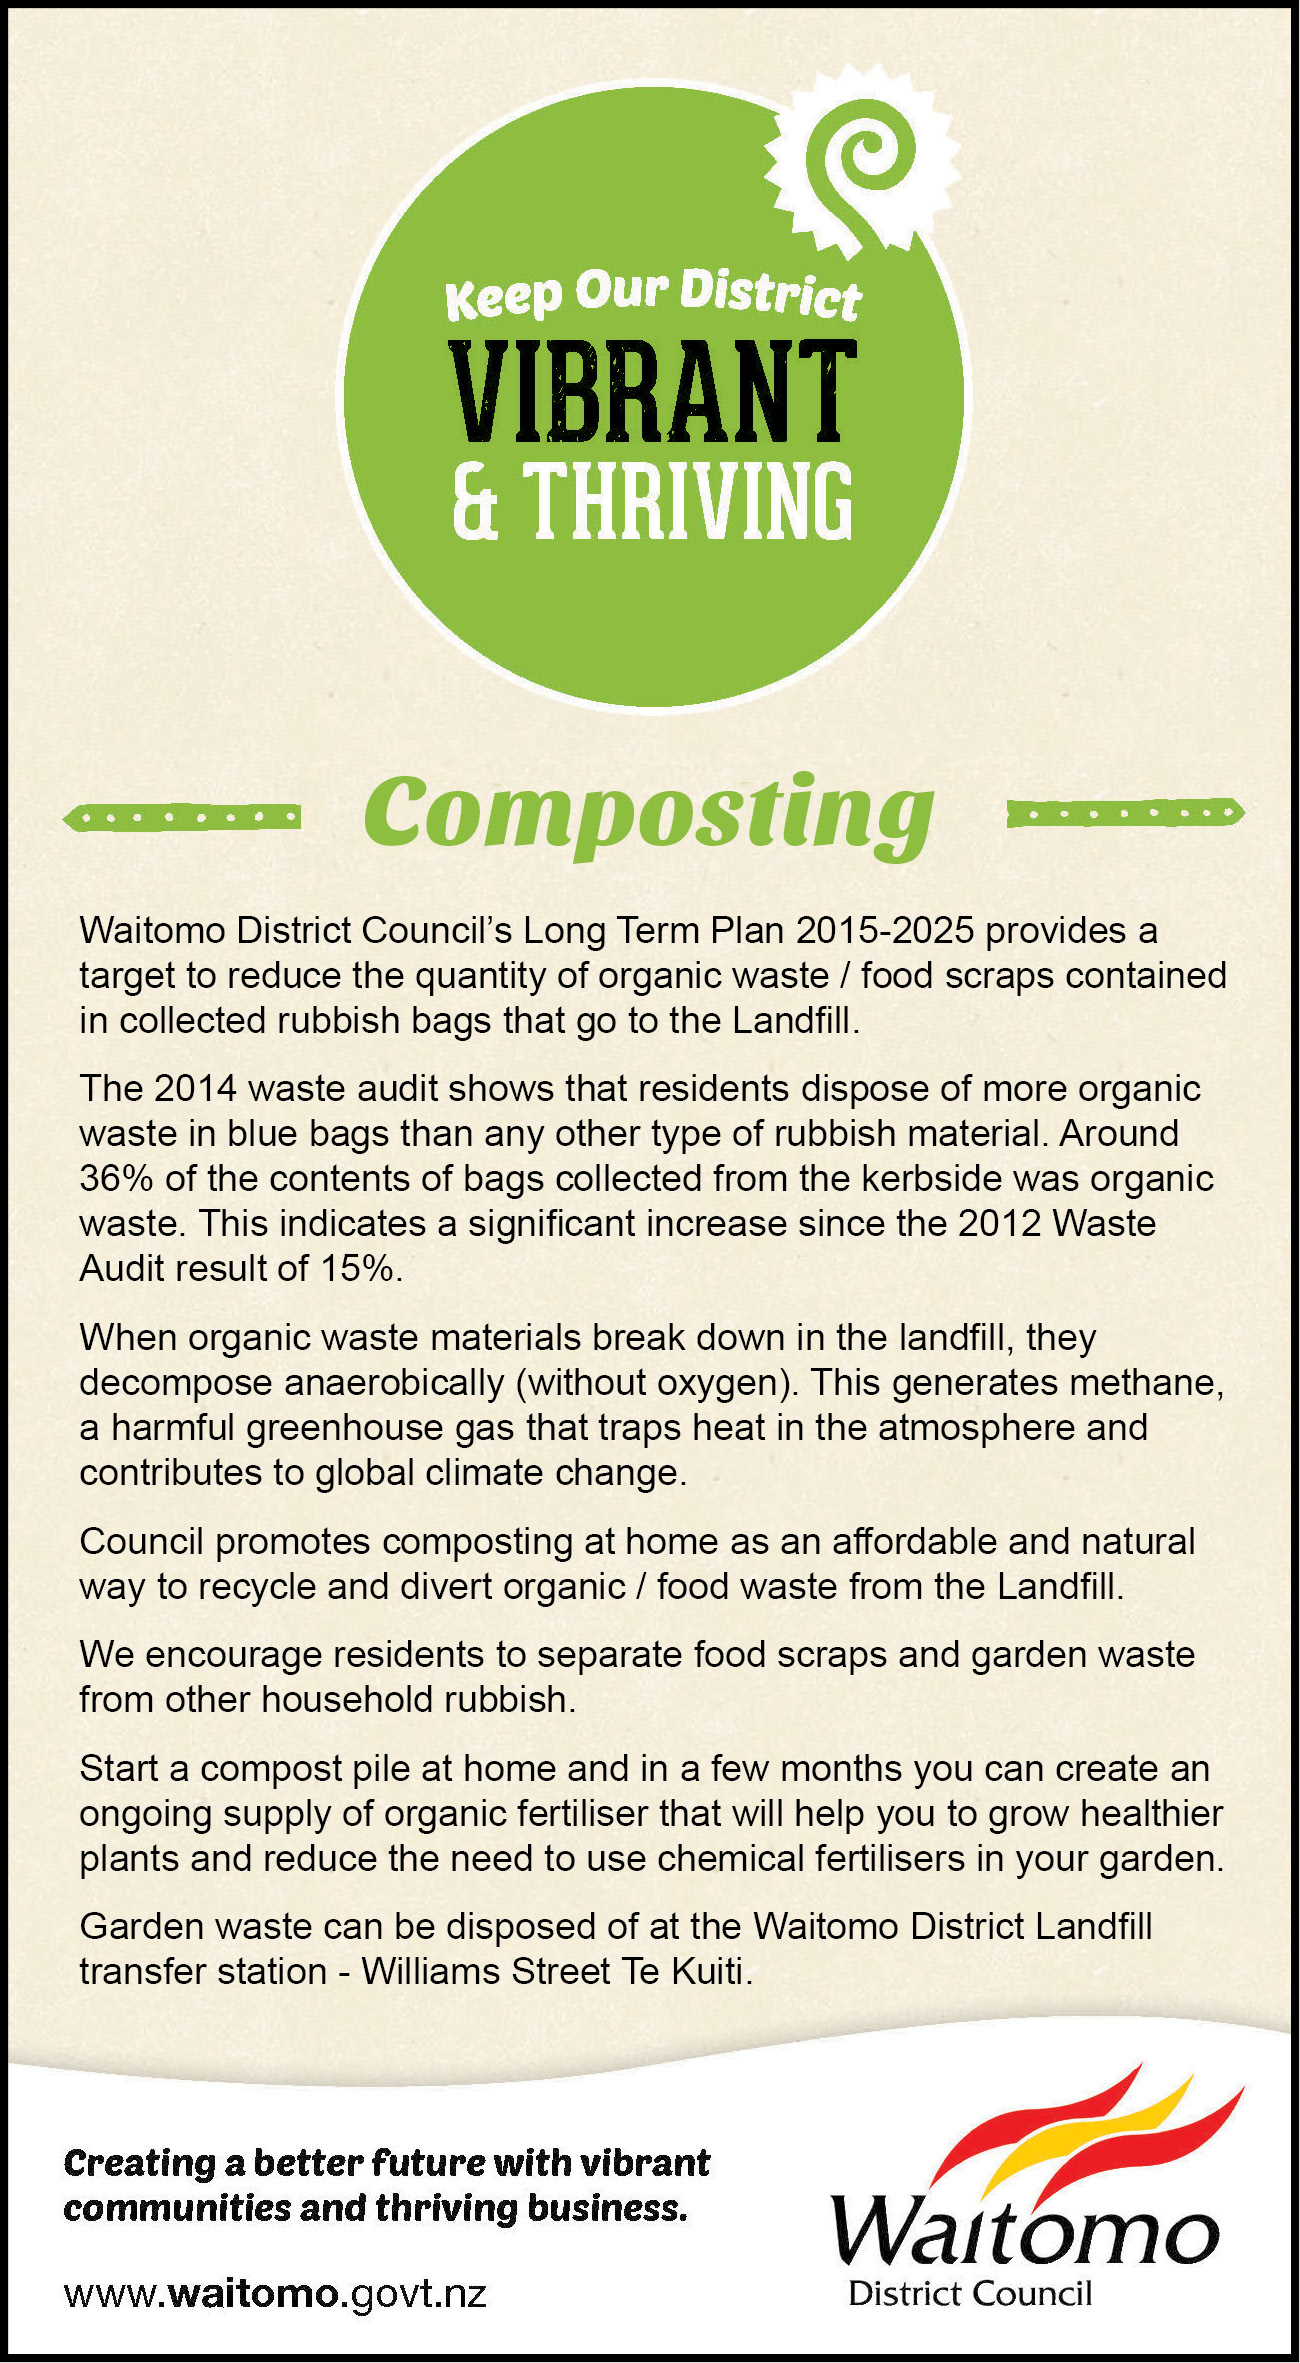 Keep our district vibrant and thriving composting at home